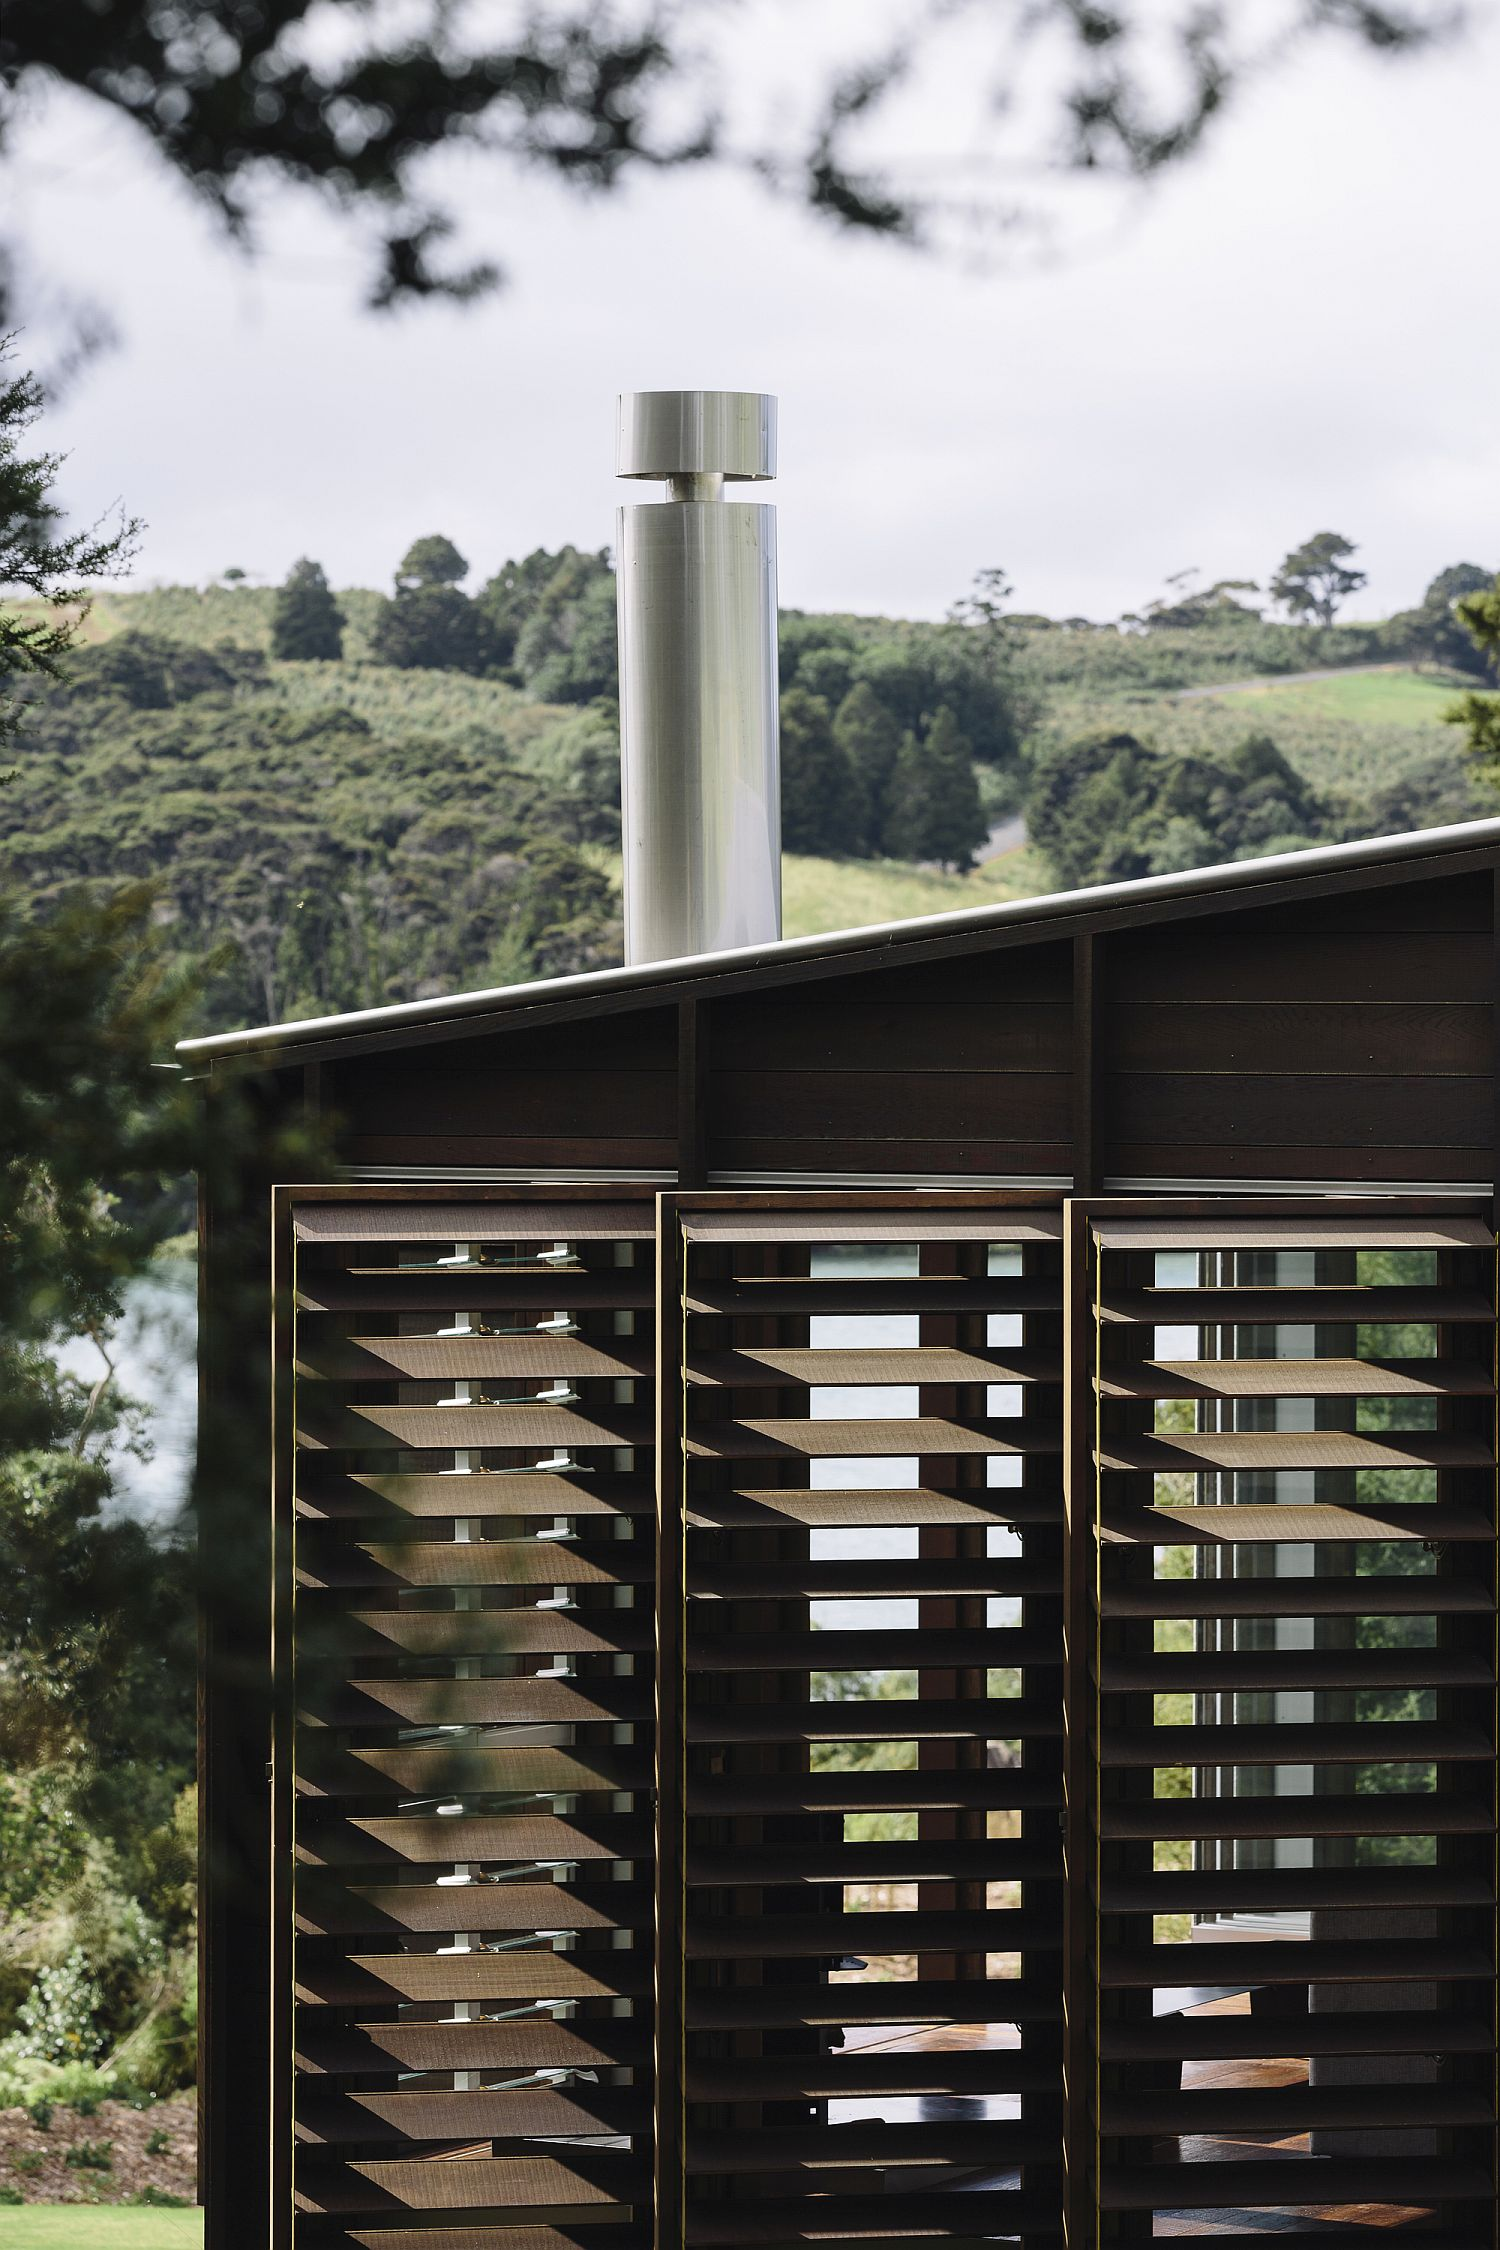 Wooden shutters of the cabin allow you to switch between privacy and ventilation